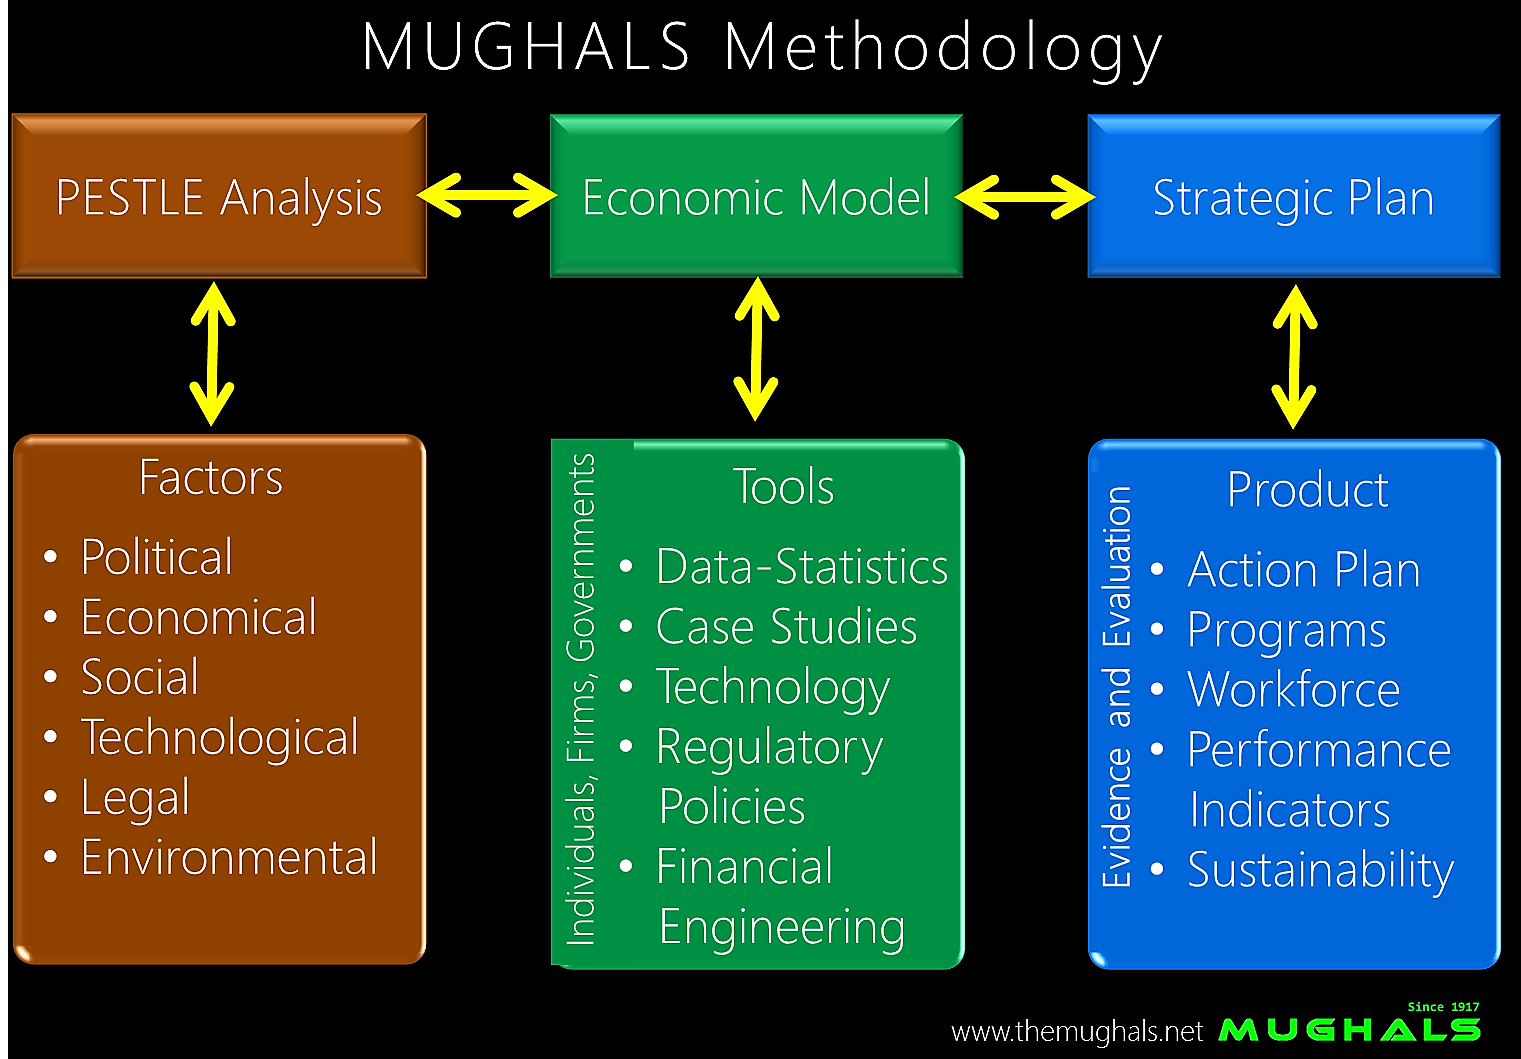 https://sites.google.com/a/themughals.net/www/home-mughals/focused-areas/MUGHALS_Web_Methodology.png?attredirects=0